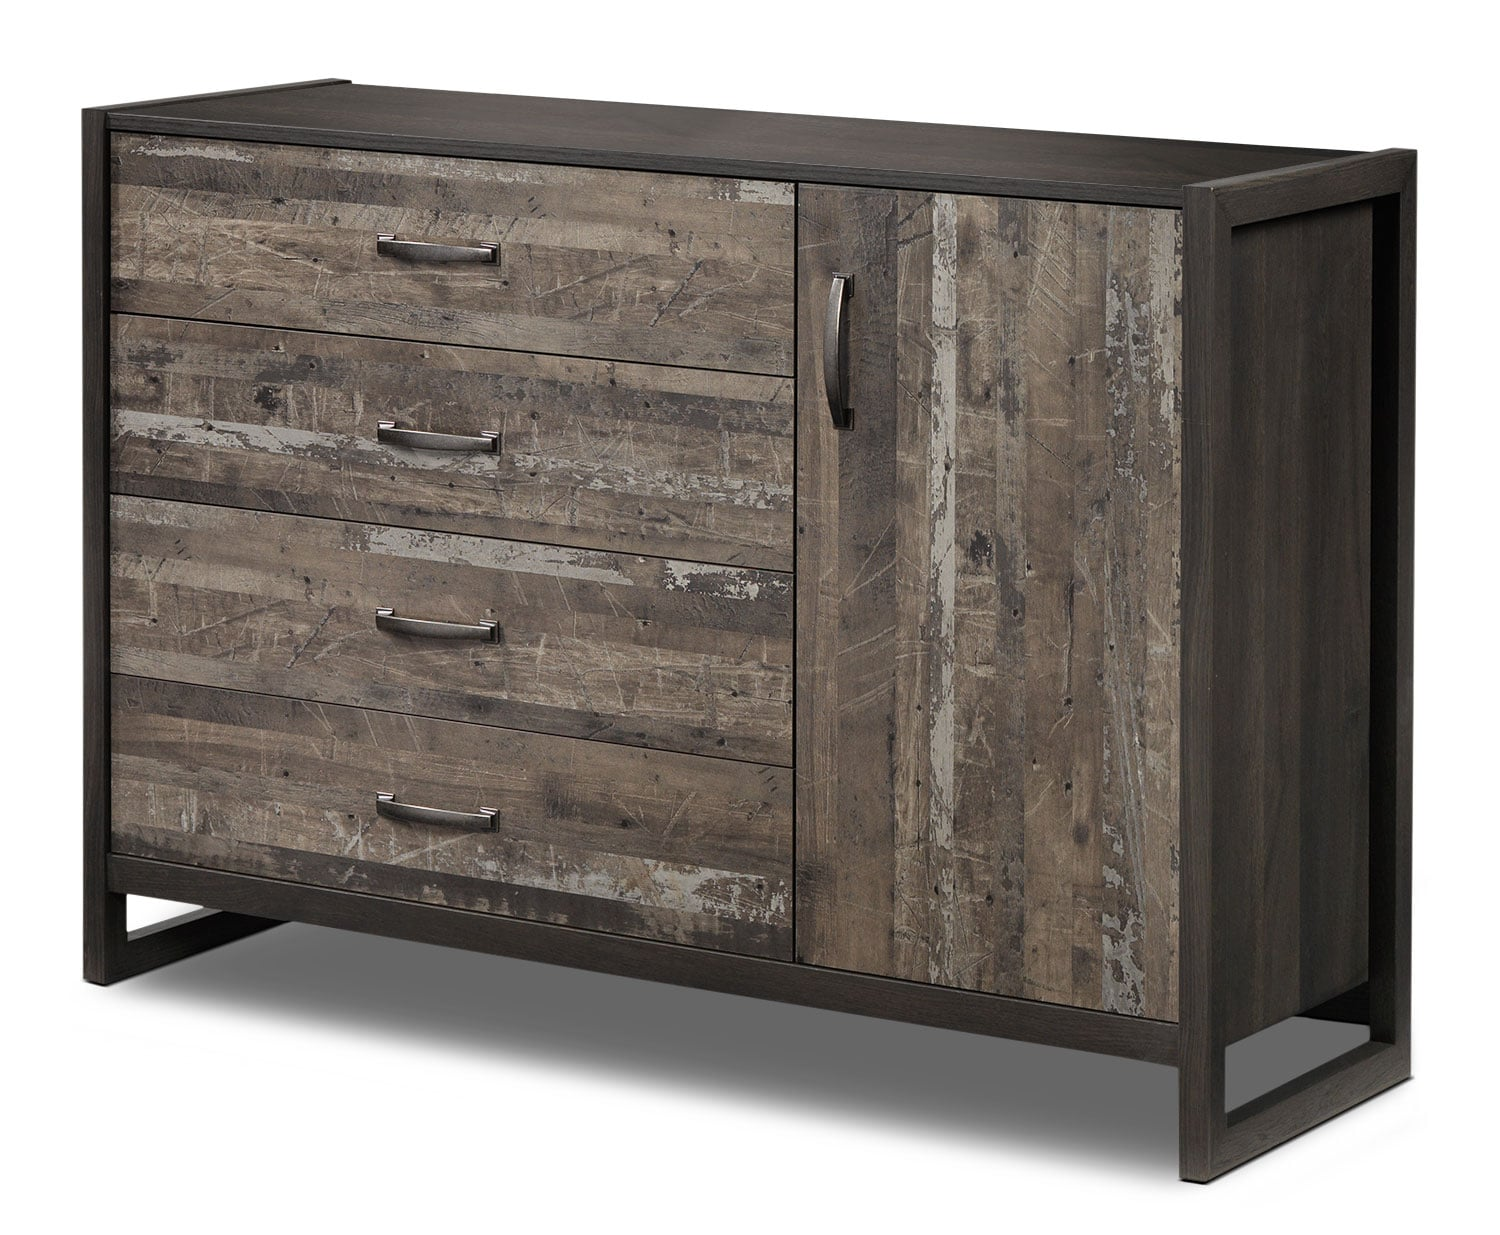 Bedroom Furniture - Hudson Dresser - Rustic Brown